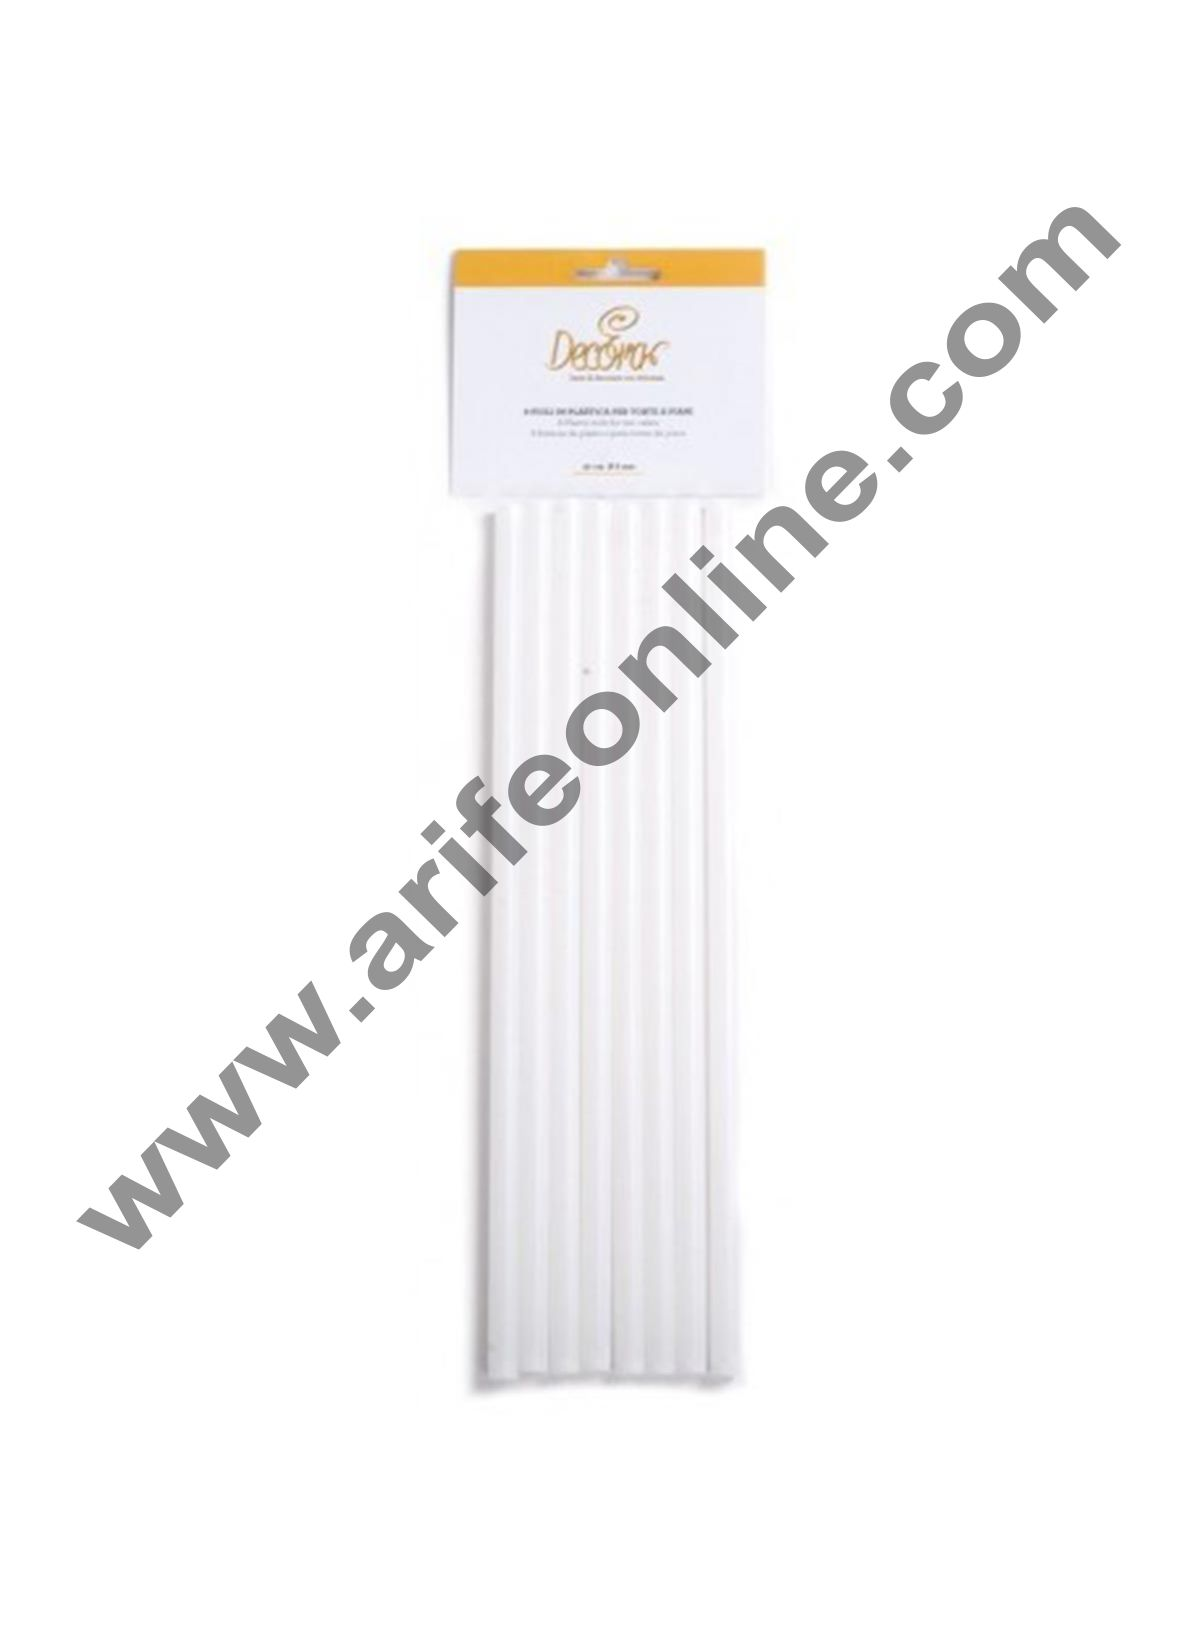 Cake Decor 8Pcs Plastic White Dowel Rods for Tiered Cake Construction, 30CM*1CM